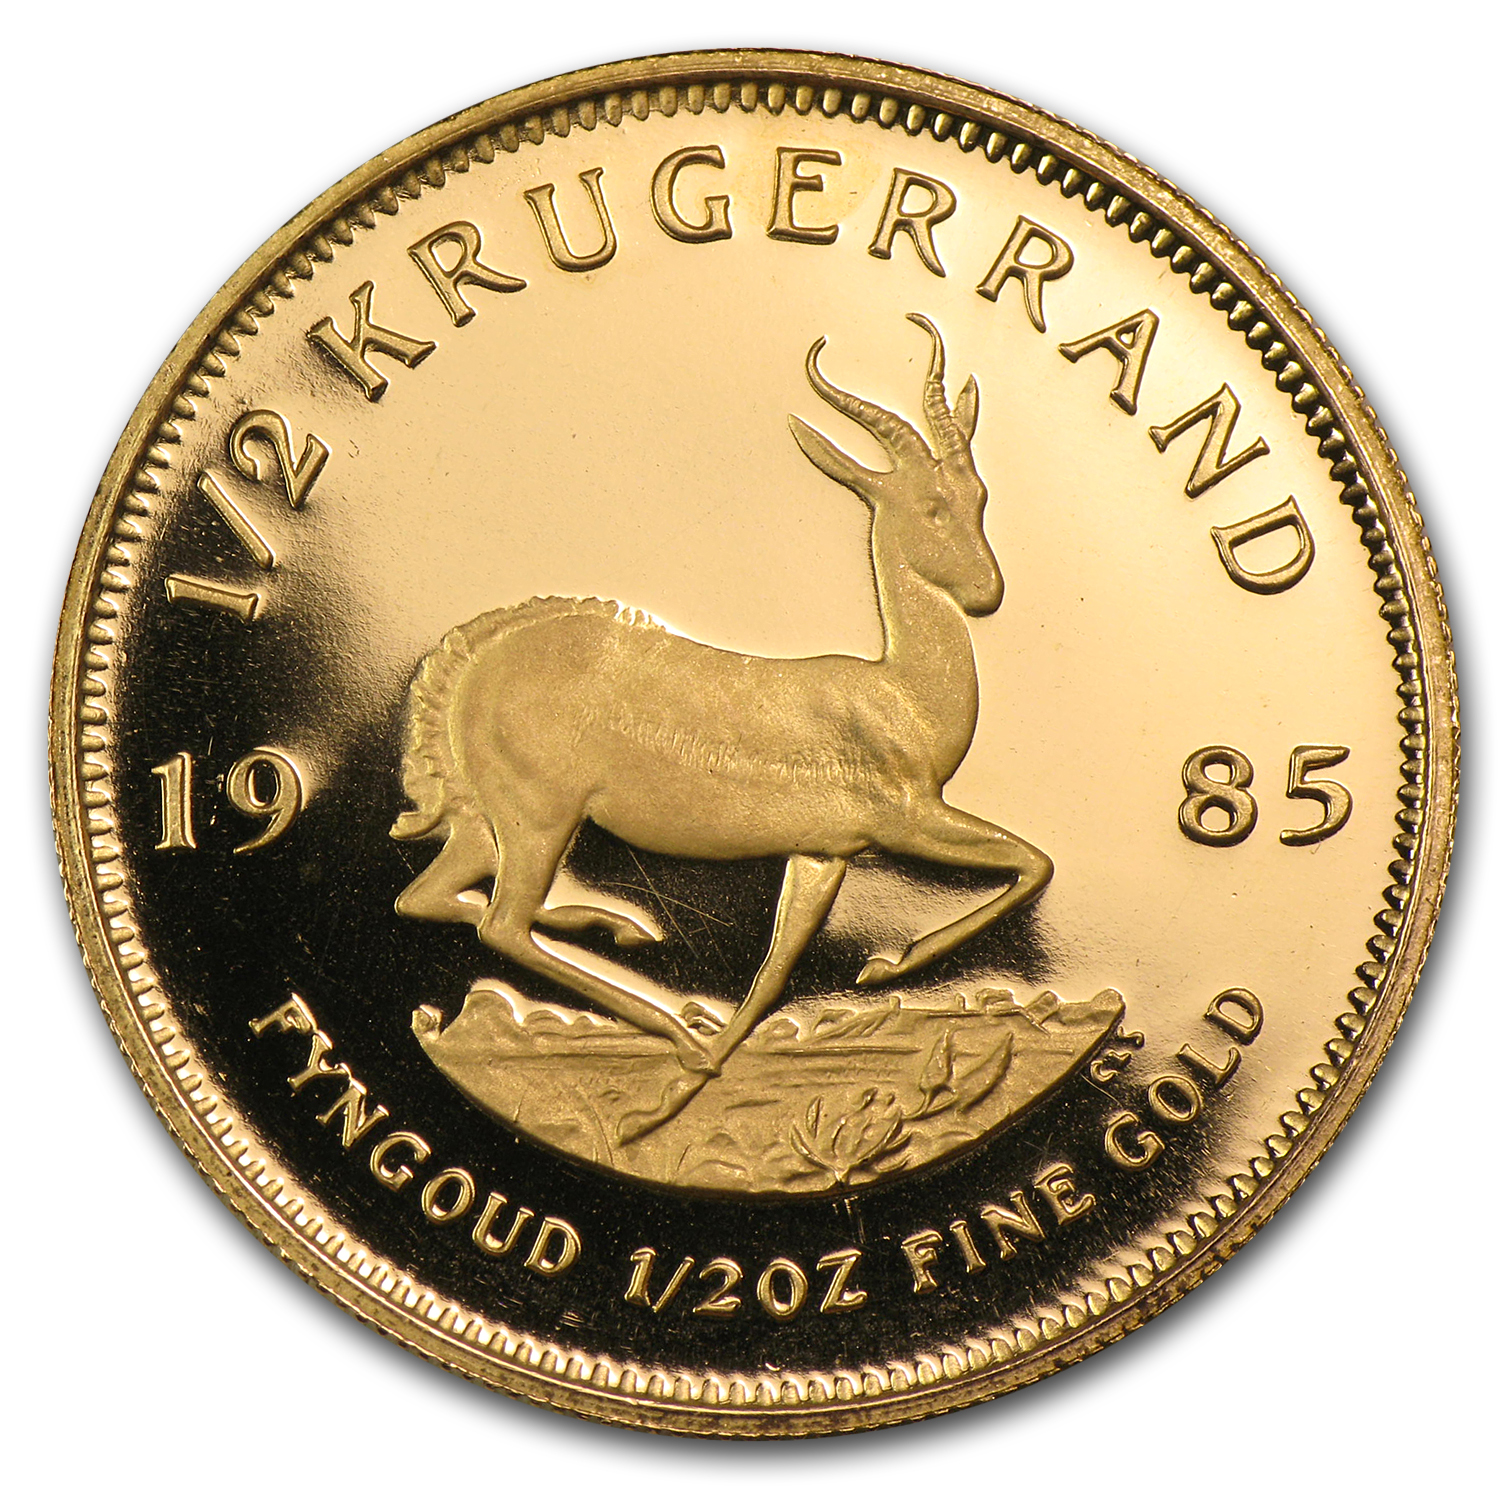 1985 South Africa 1/2 oz Proof Gold Krugerrand